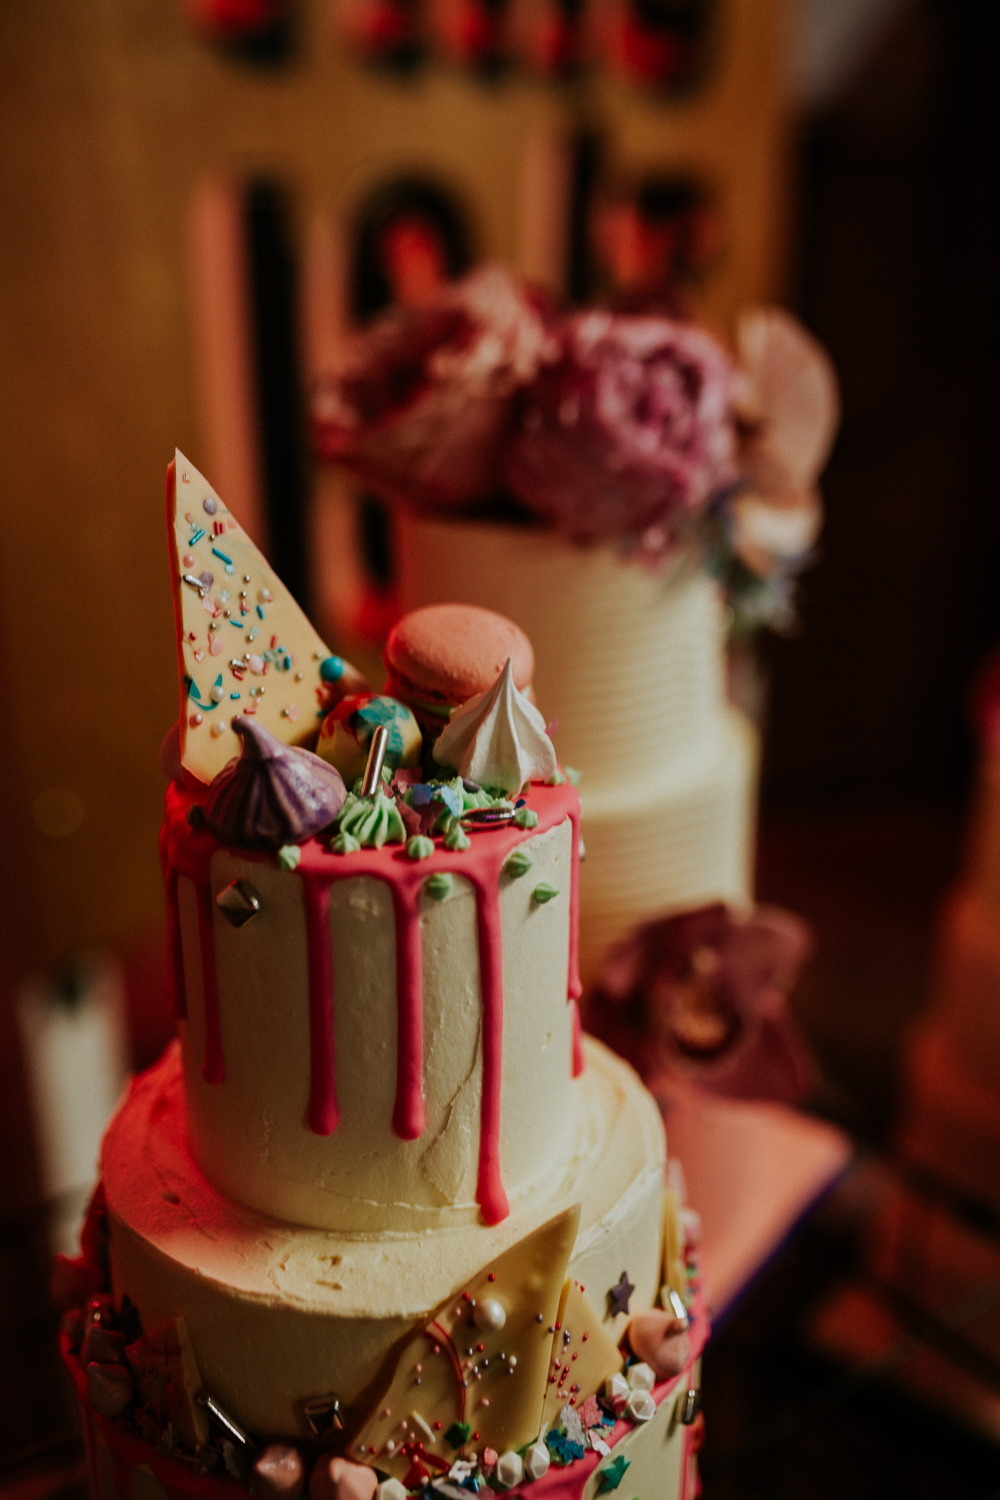 Cake Cakes Drip Macaron Neon Sign Wedding Ideas State Of Love and Trust Photography